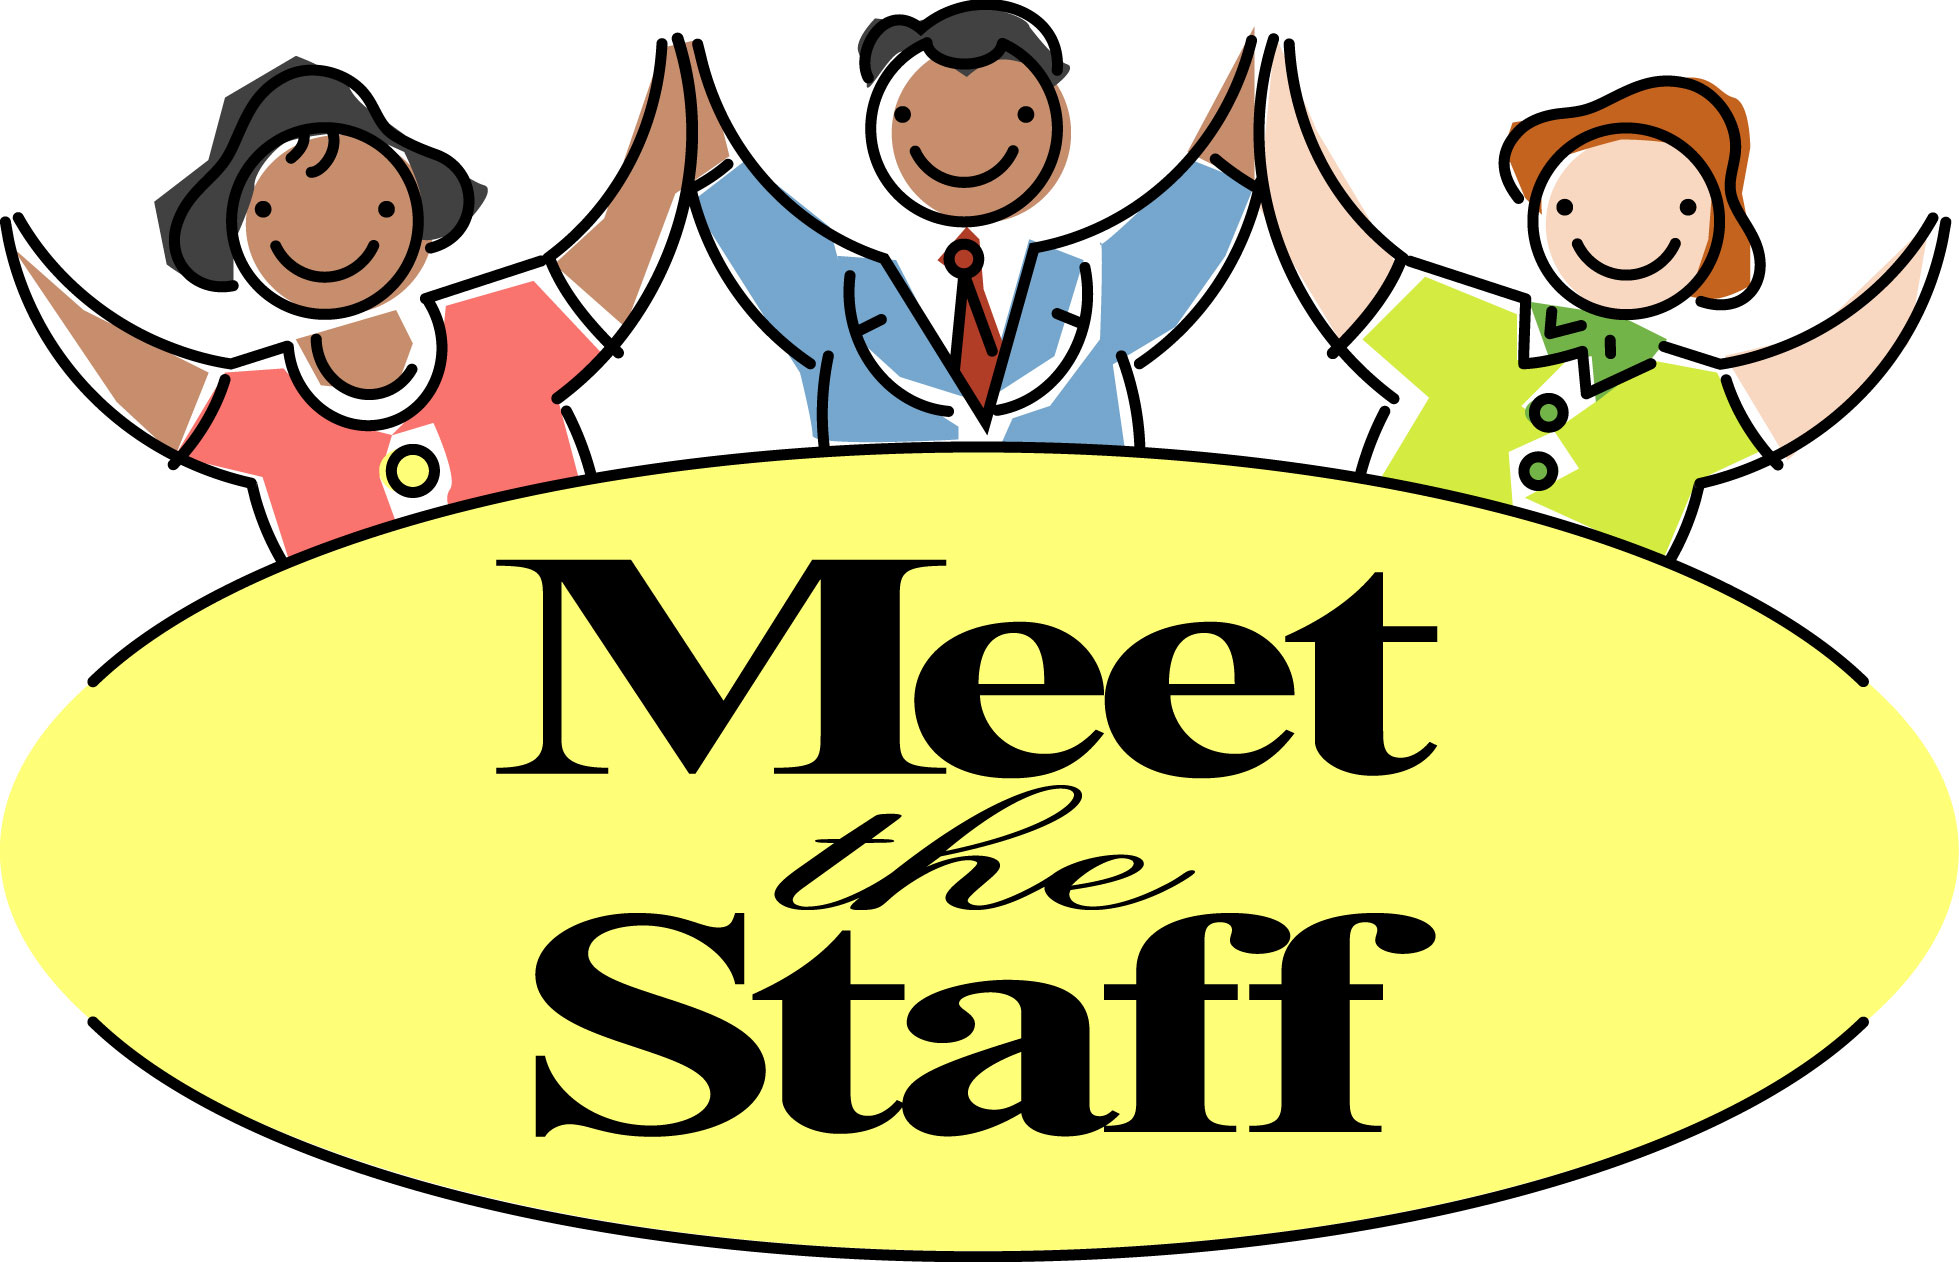 Other clipart meet and greet Free Staff Clipart Panda Free